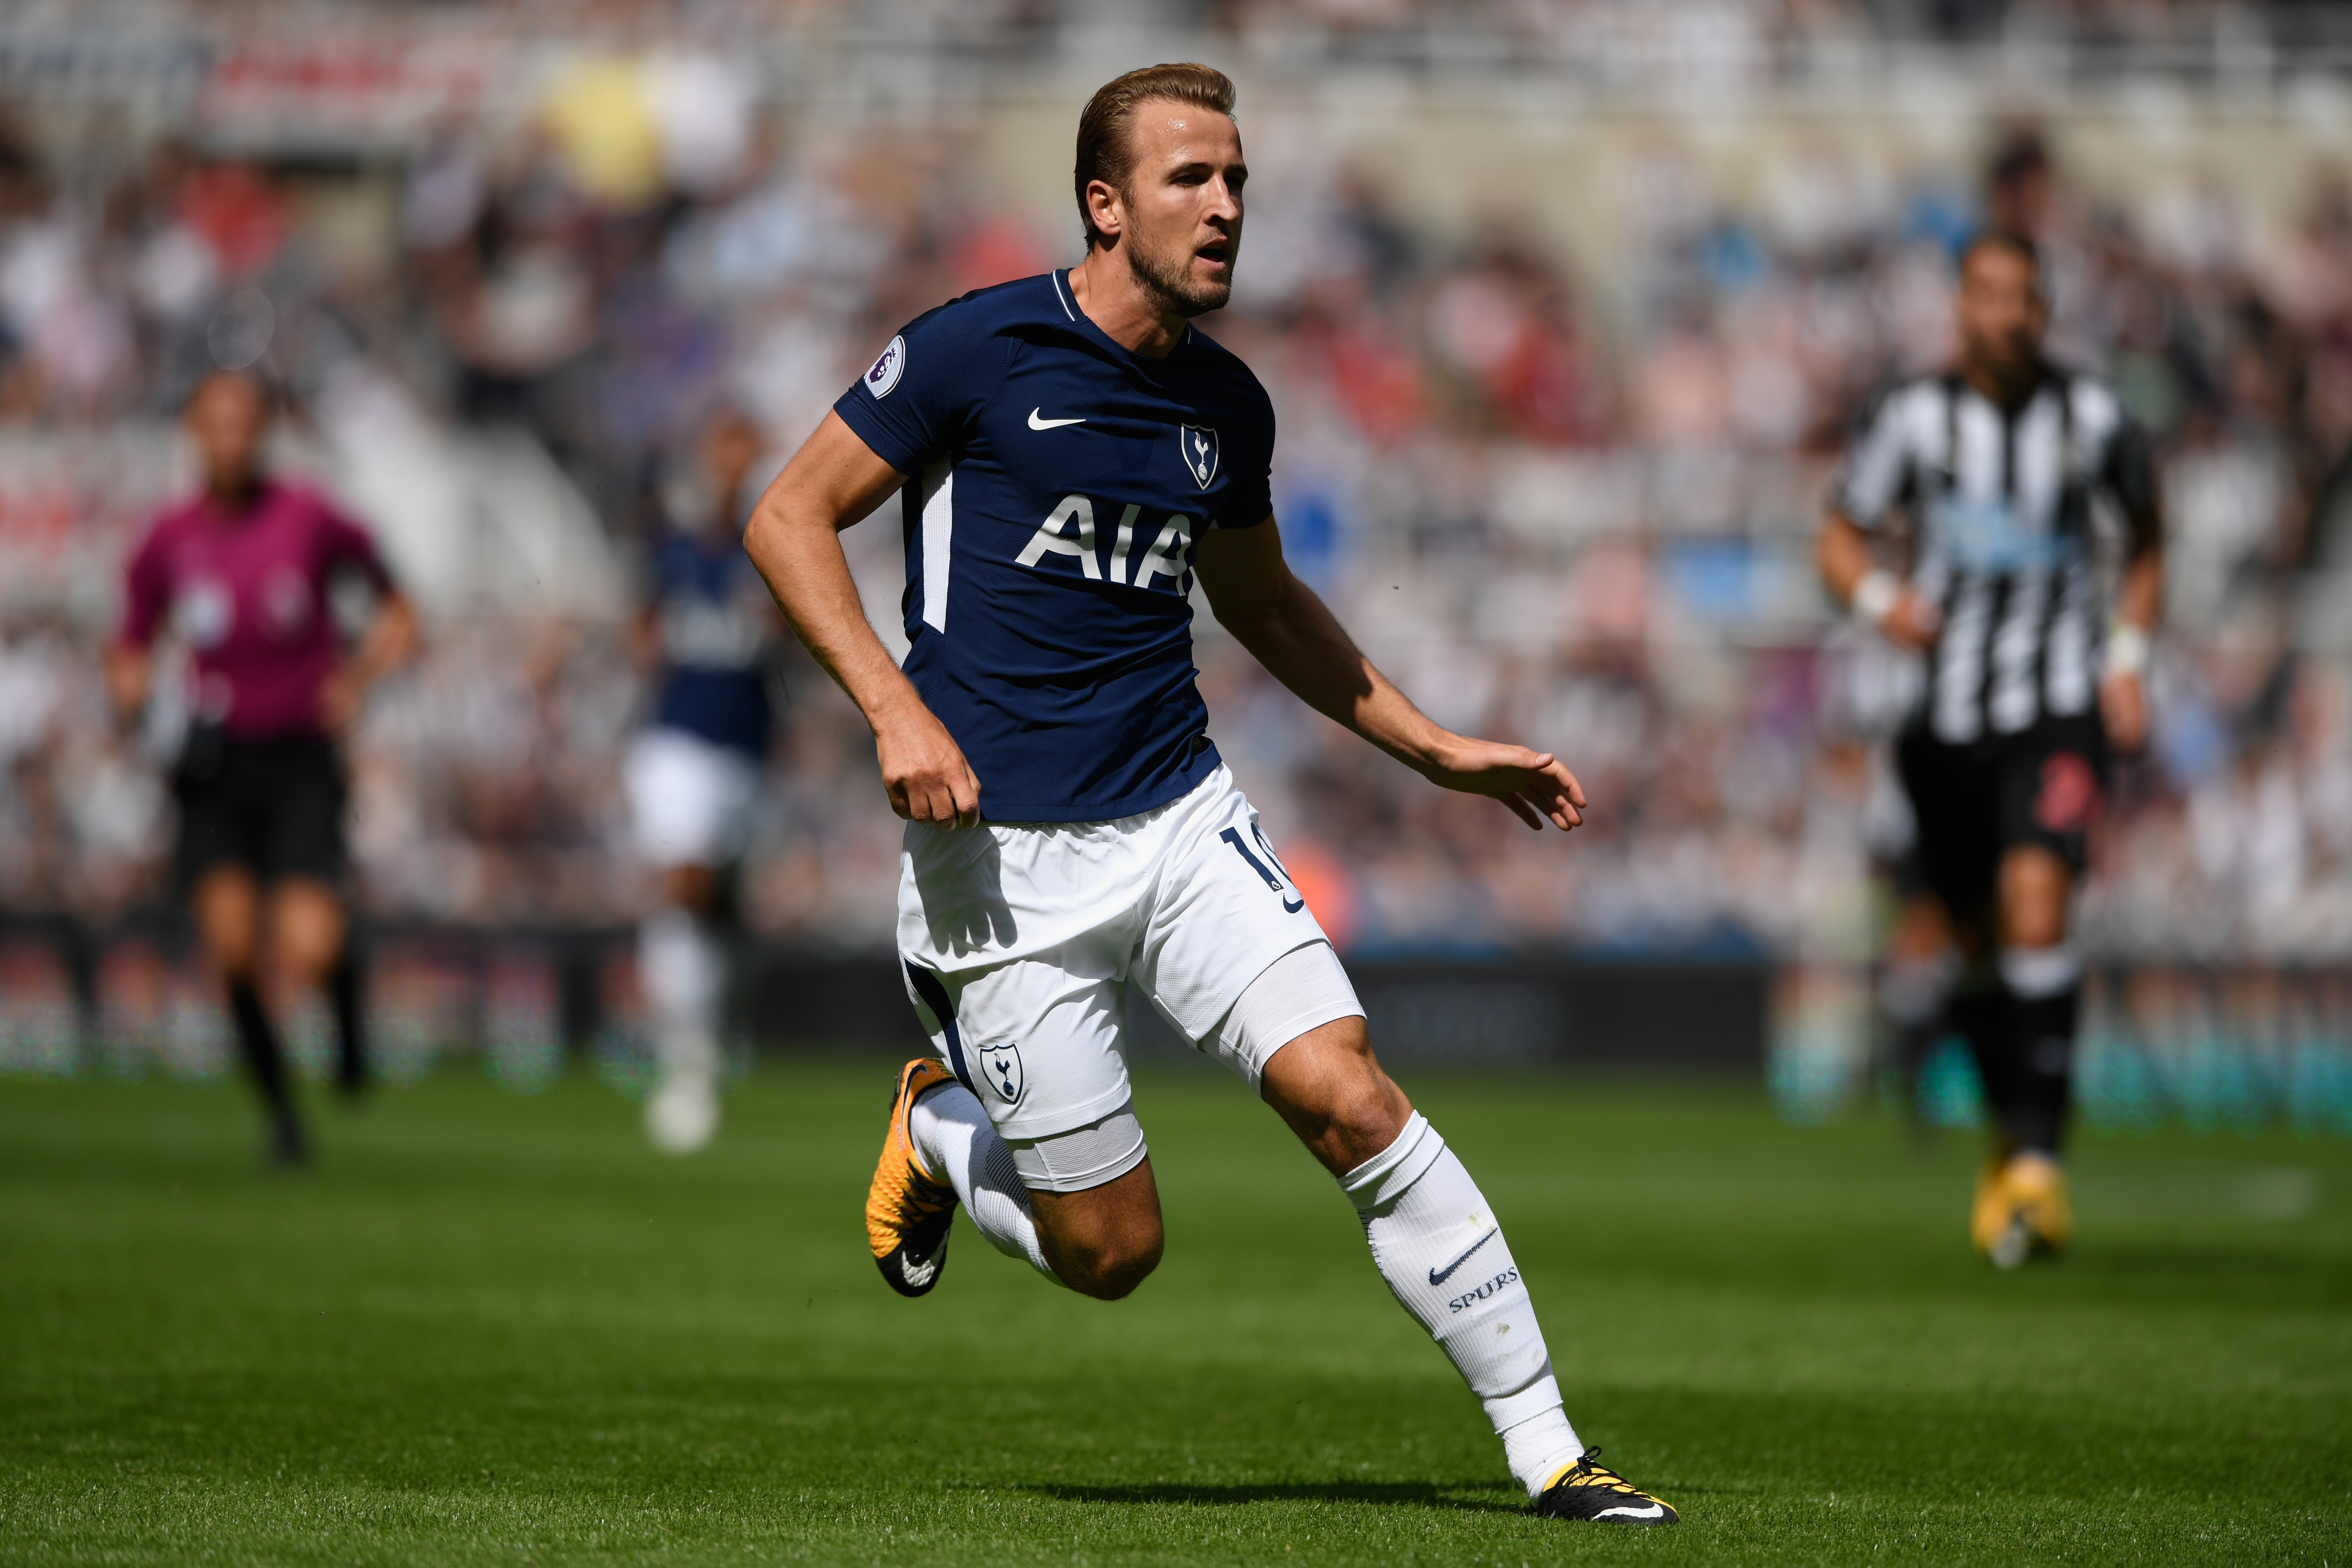 NEWCASTLE UPON TYNE, ENGLAND - AUGUST 13: Tottenham player Harry Kane in action during the Premier League match between Newcastle United and Tottenham Hotspur at St. James Park on August 13, 2017 in Newcastle upon Tyne, England. (Photo by Stu Forster/Getty Images)